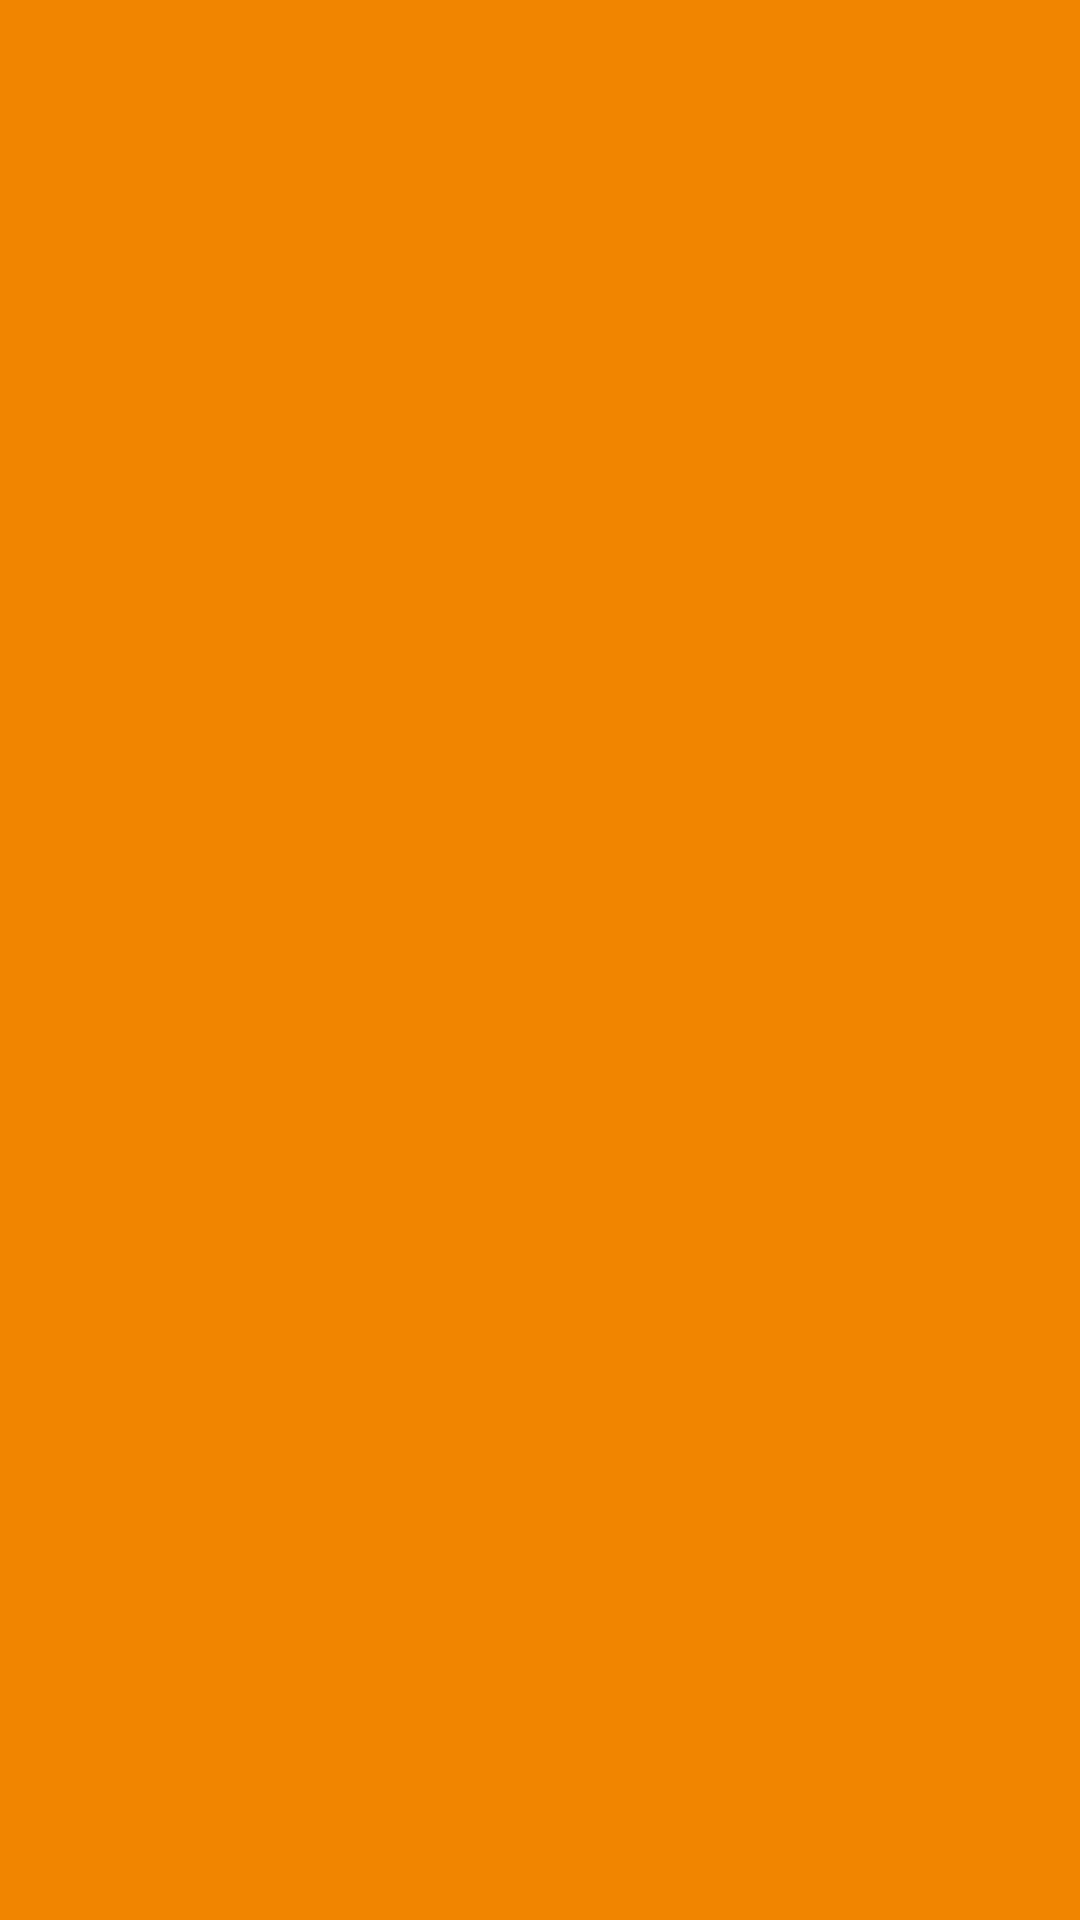 1080x1920 Tangerine Solid Color Background